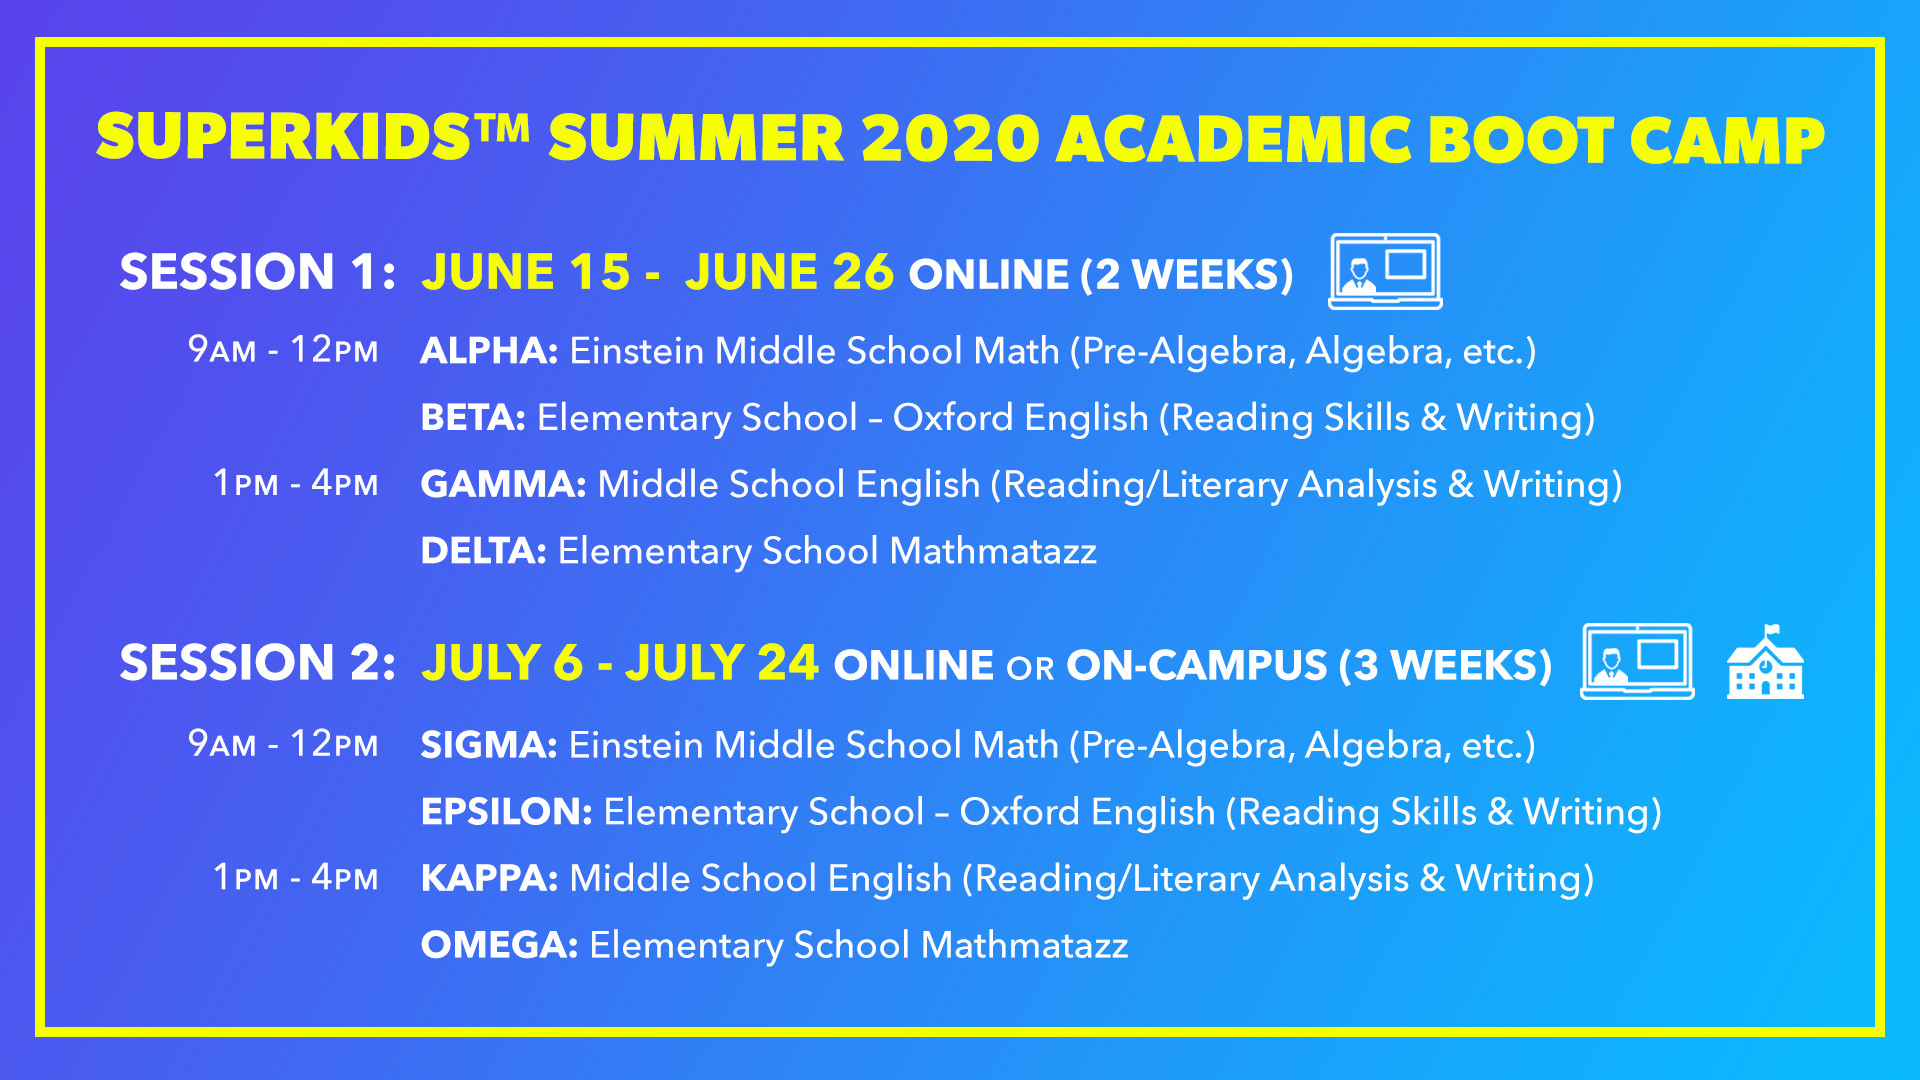 Summer 2020 Academic Boot Camp